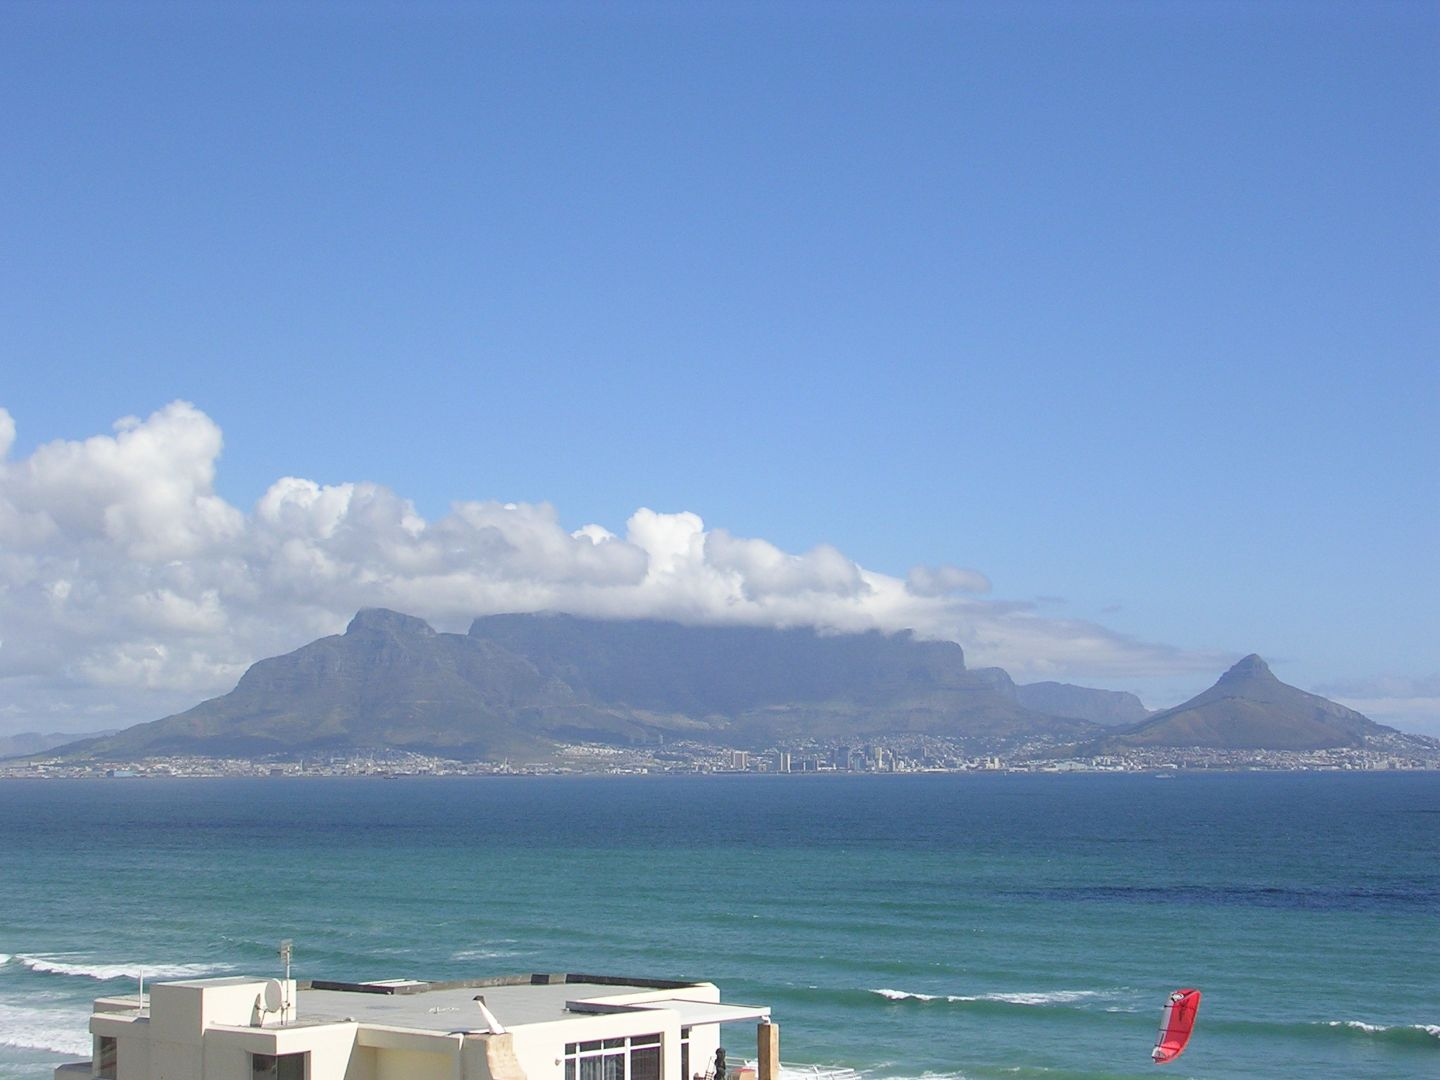 B1001 Ocean View Cape Town South Africa